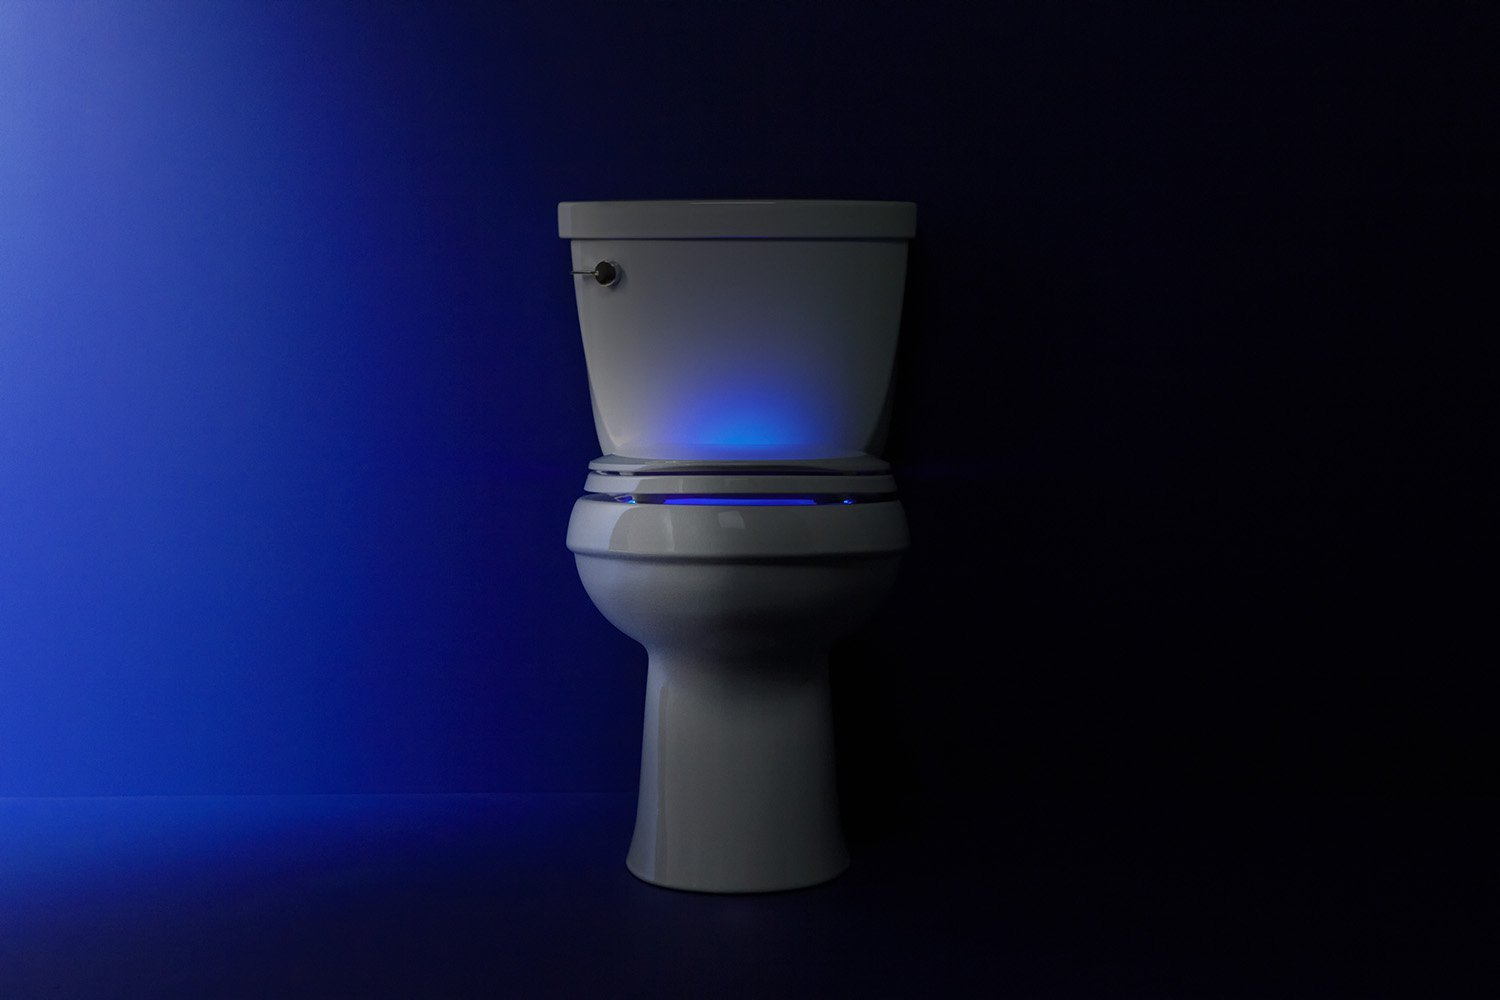 kohler lighted toilet seat